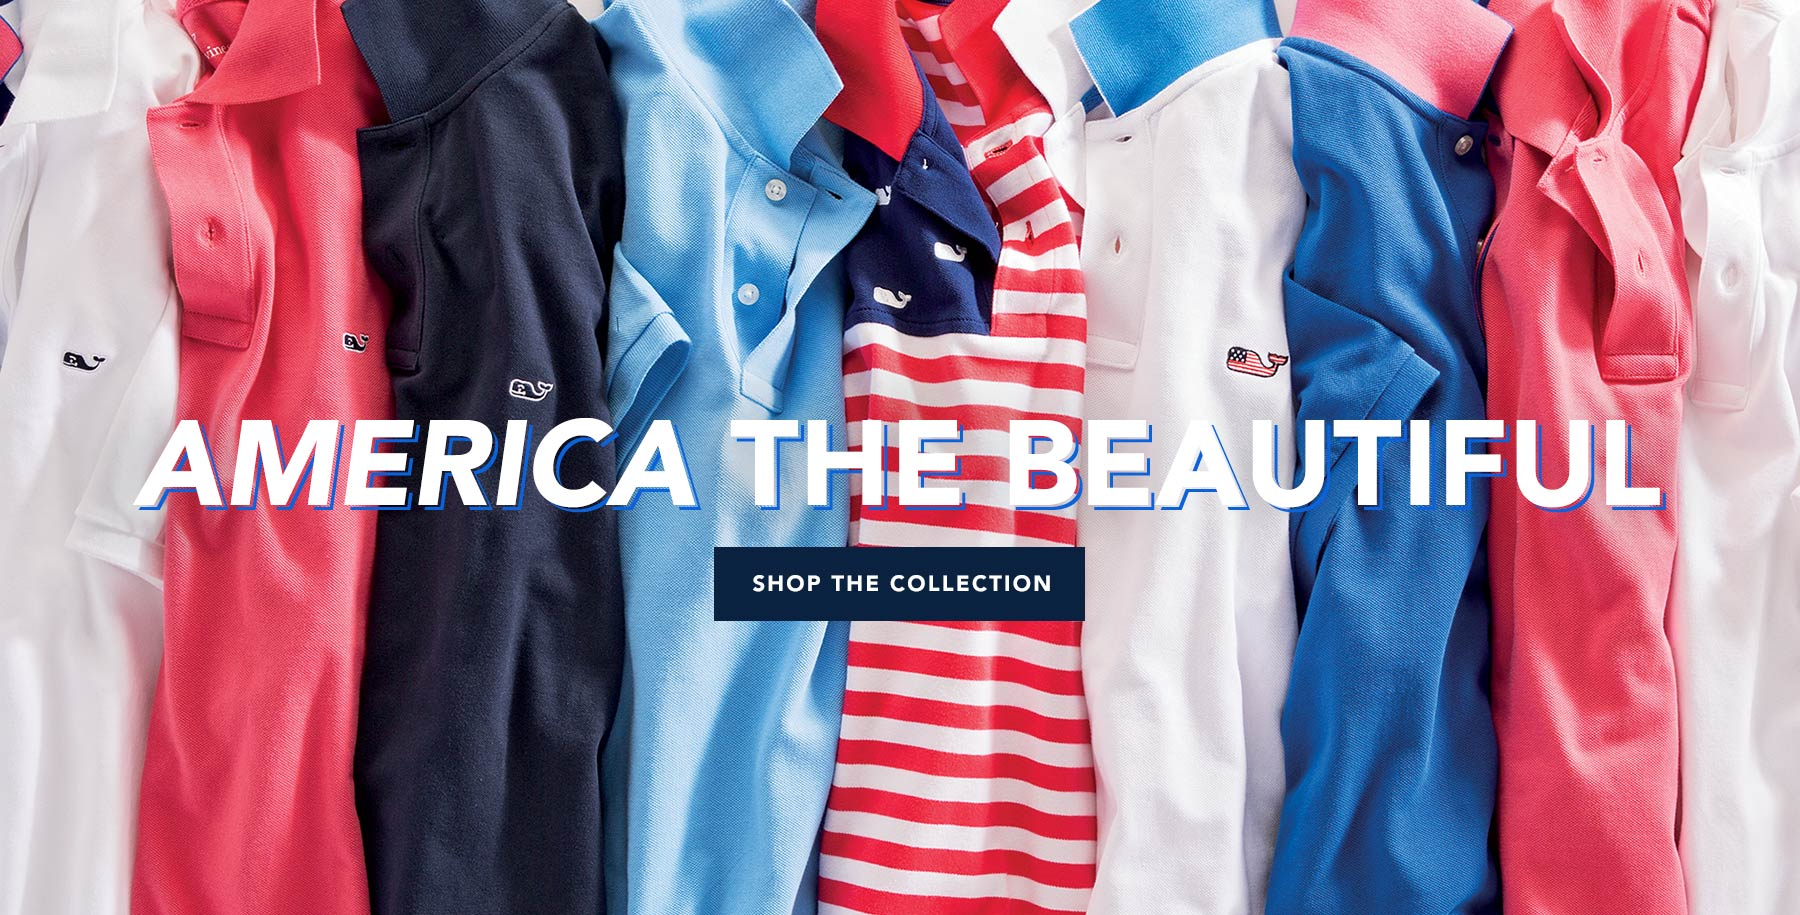 America the beautiful. Shop the collection.